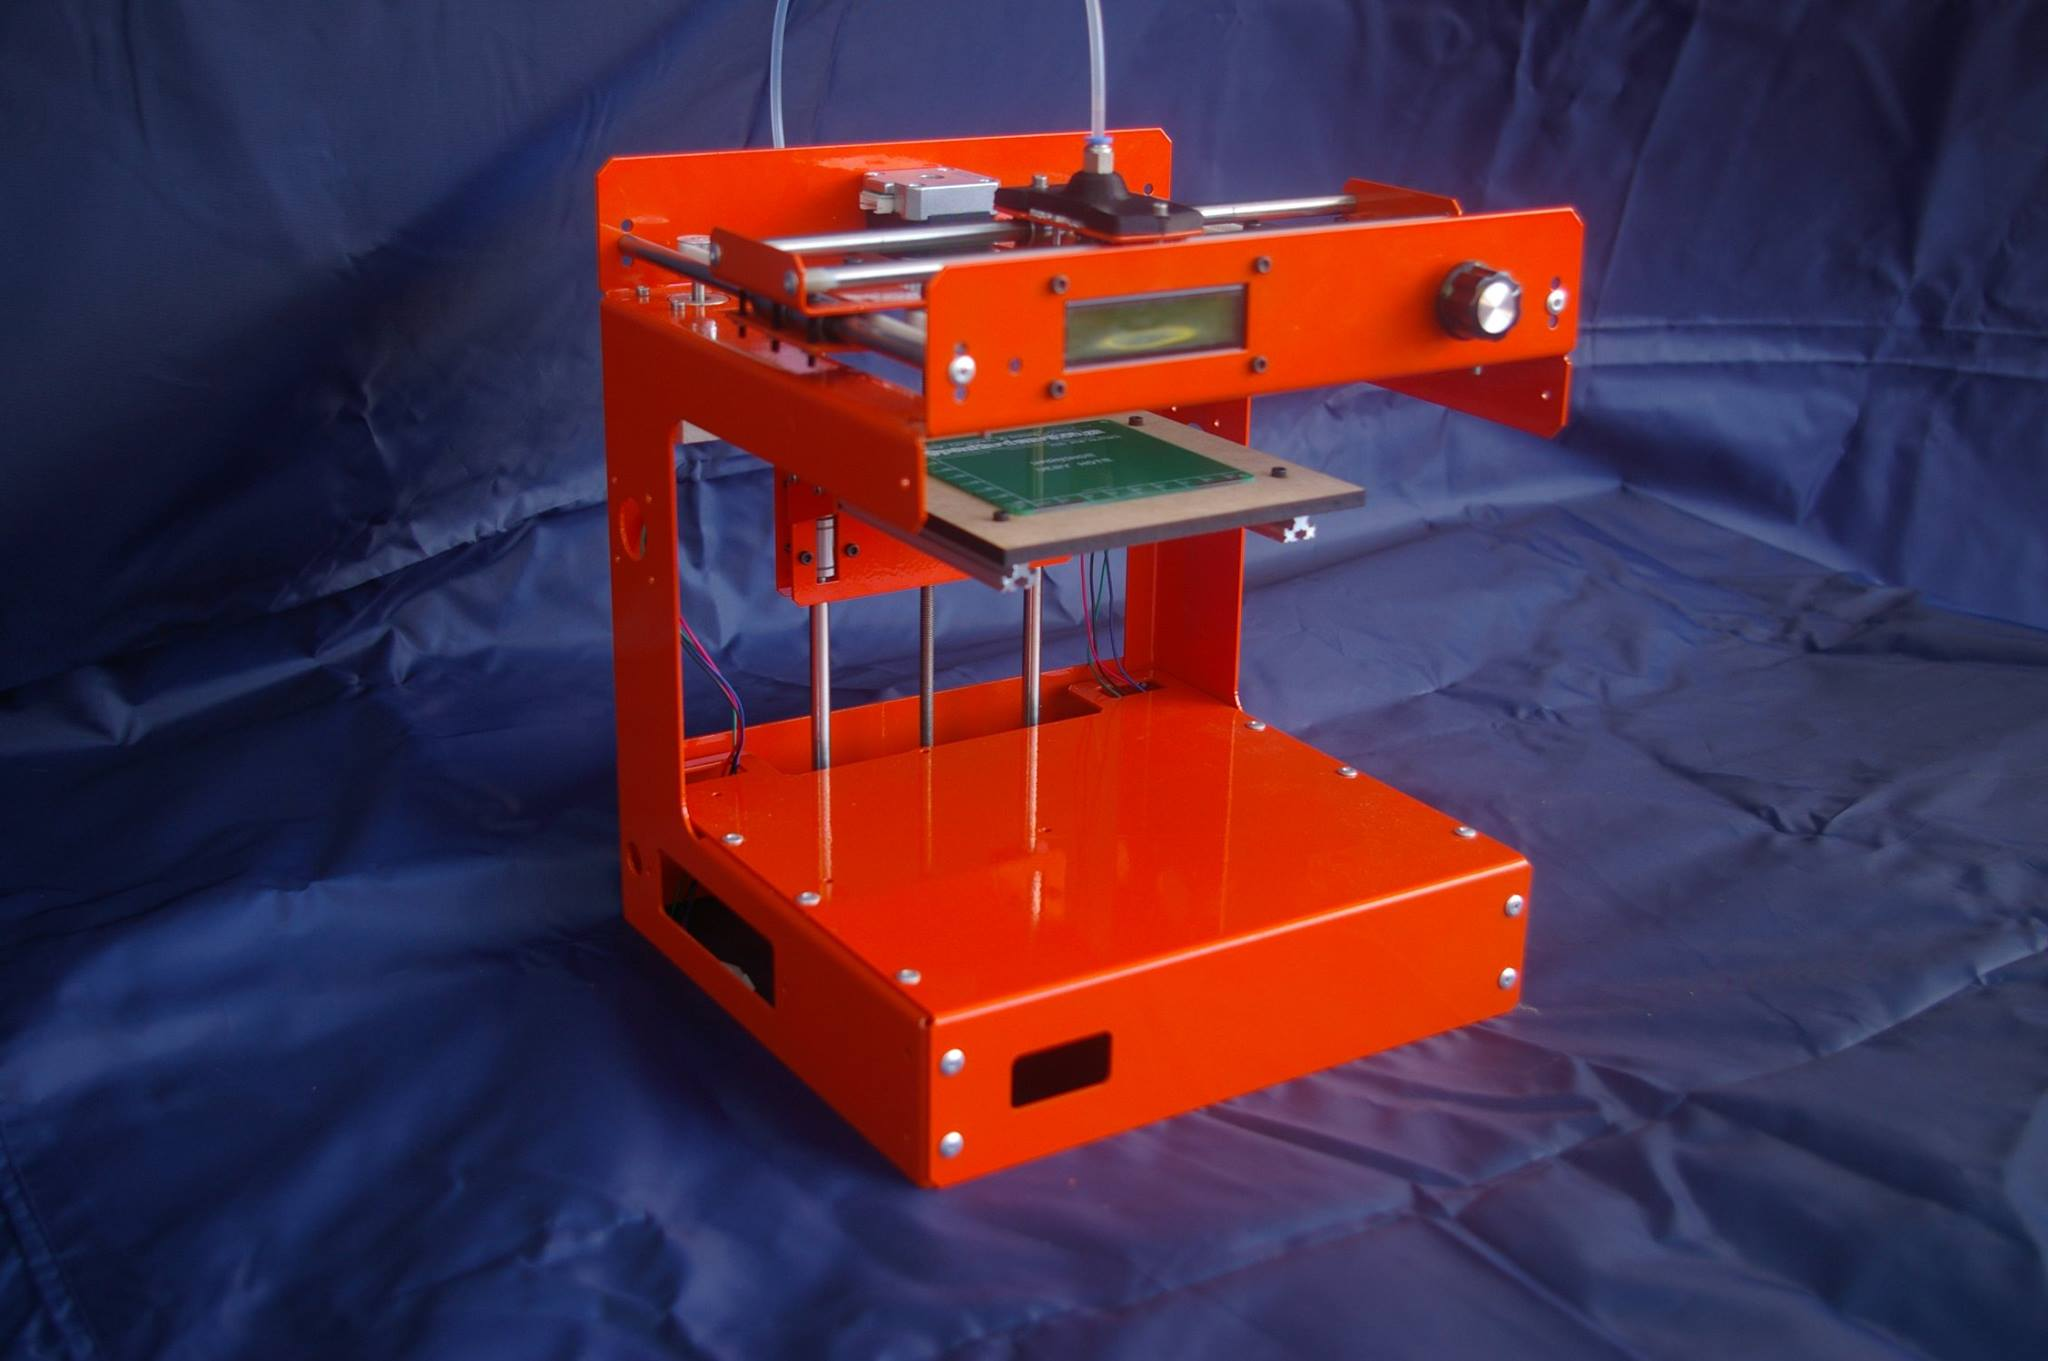 Man Creates Cheap 3D Printer out of Sheet Metal for South Africa